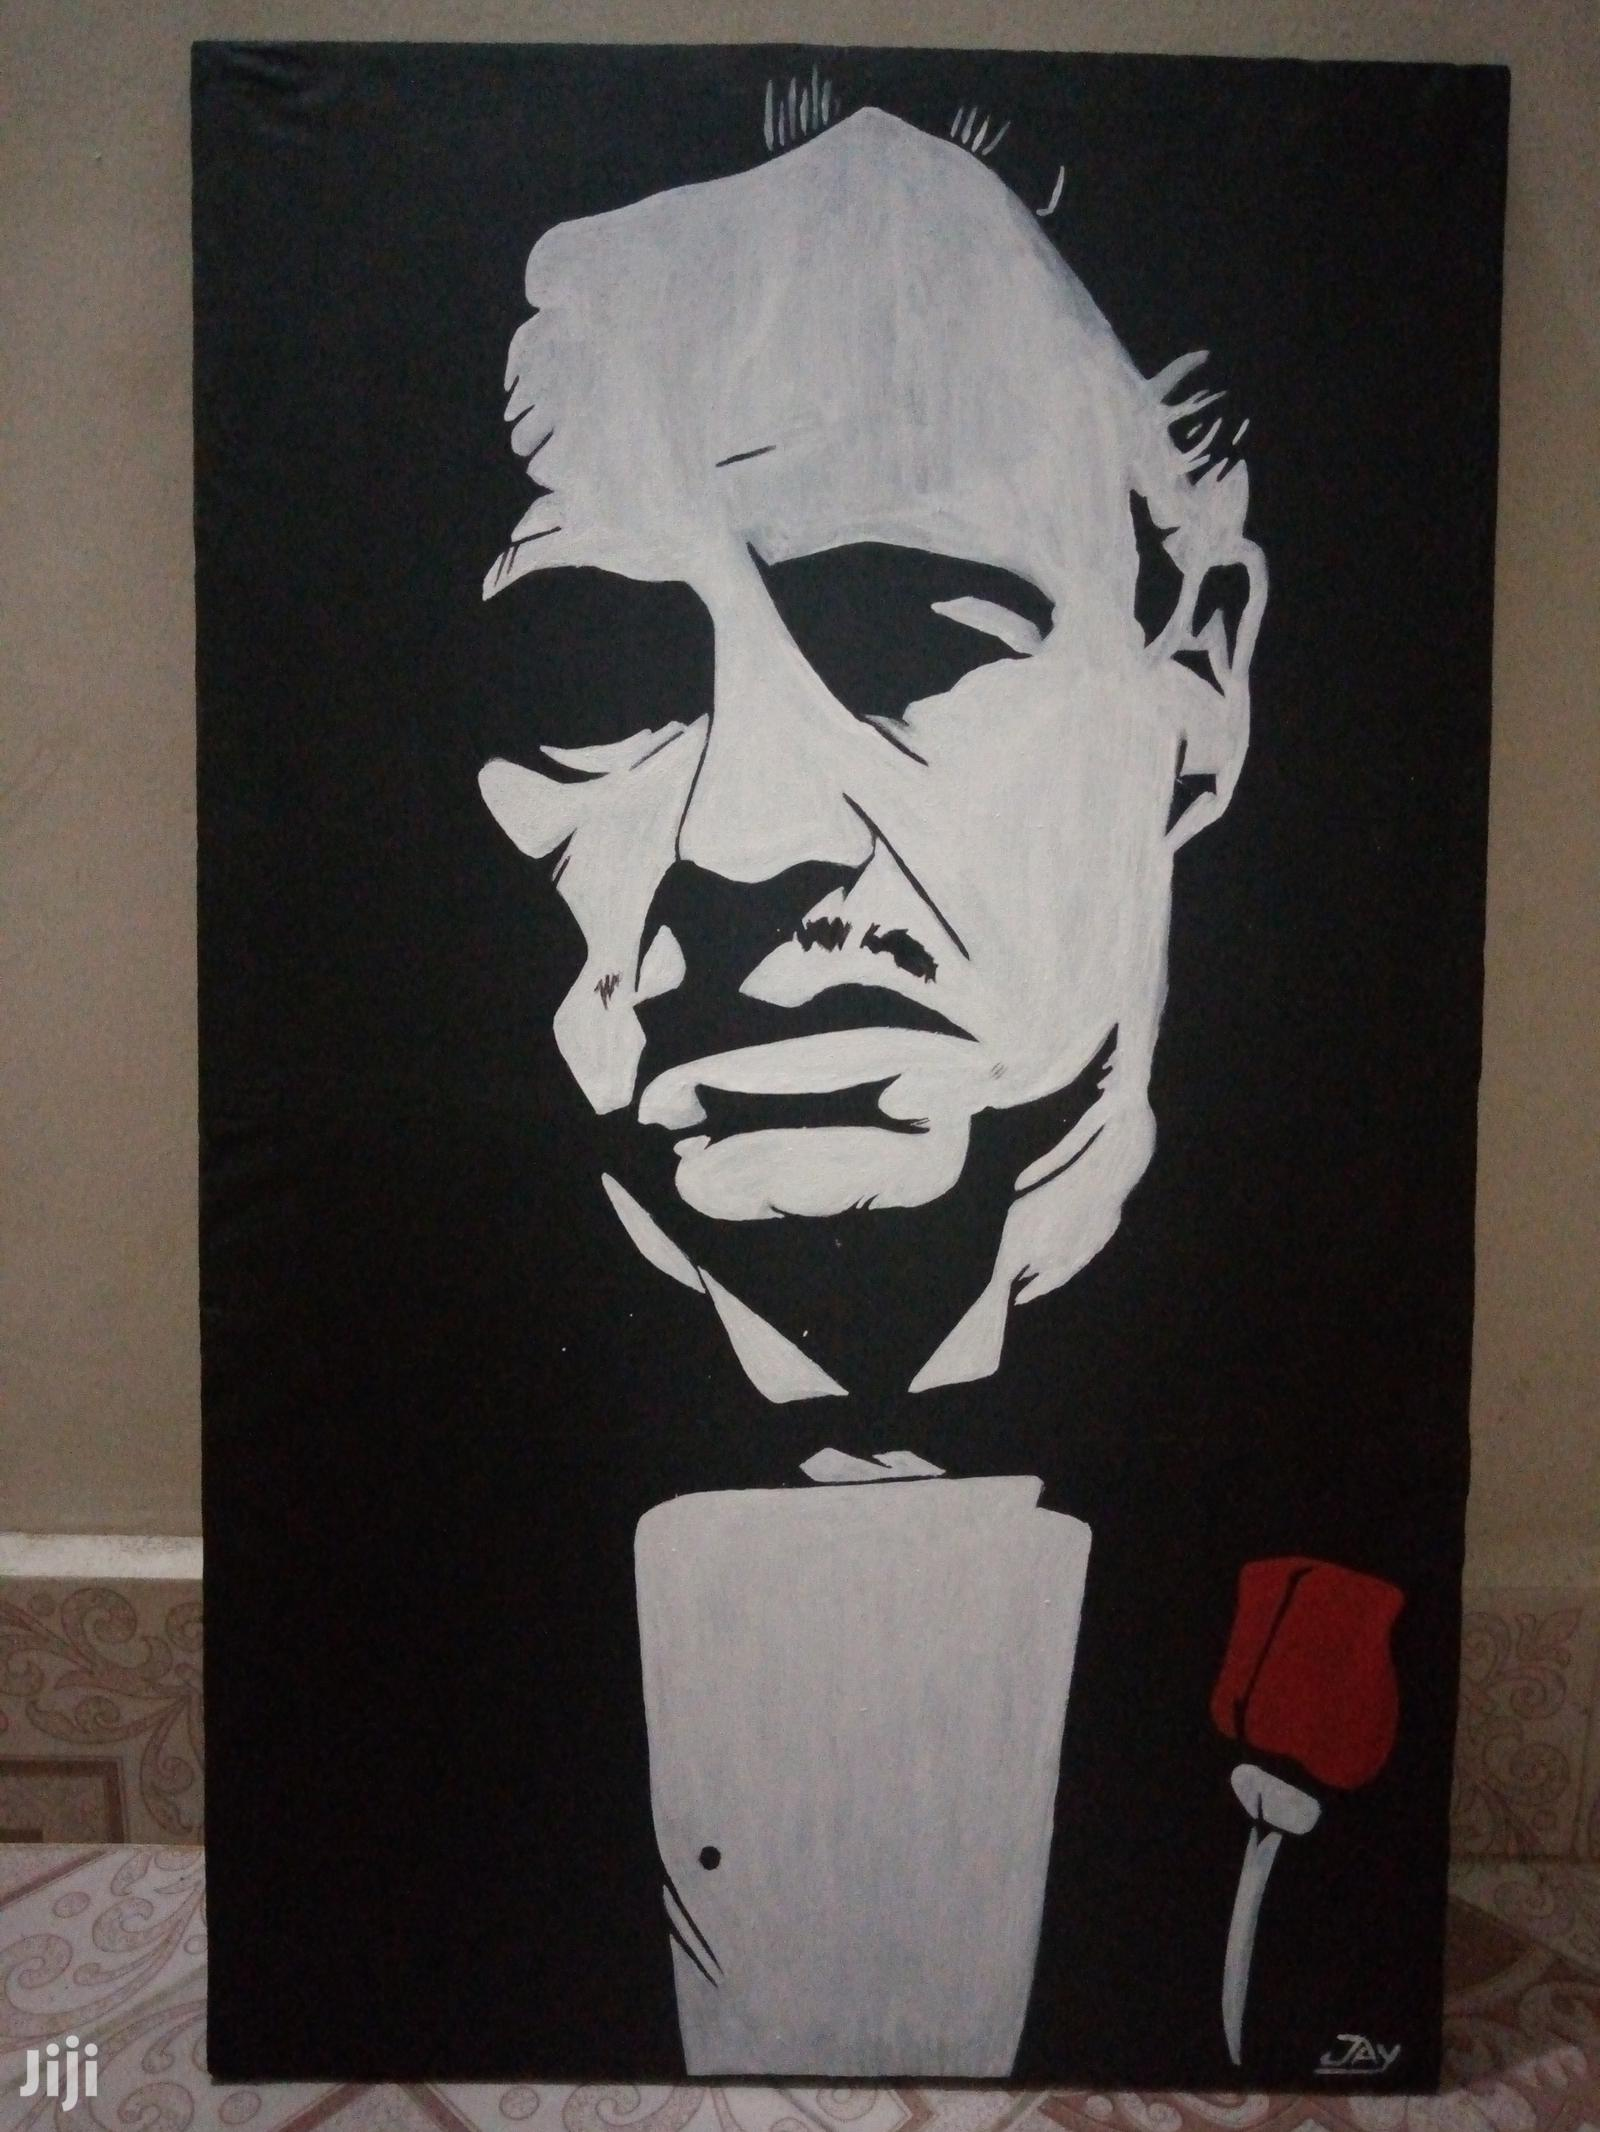 The Godfather Painting | Arts & Crafts for sale in Kinondoni, Dar es Salaam, Tanzania